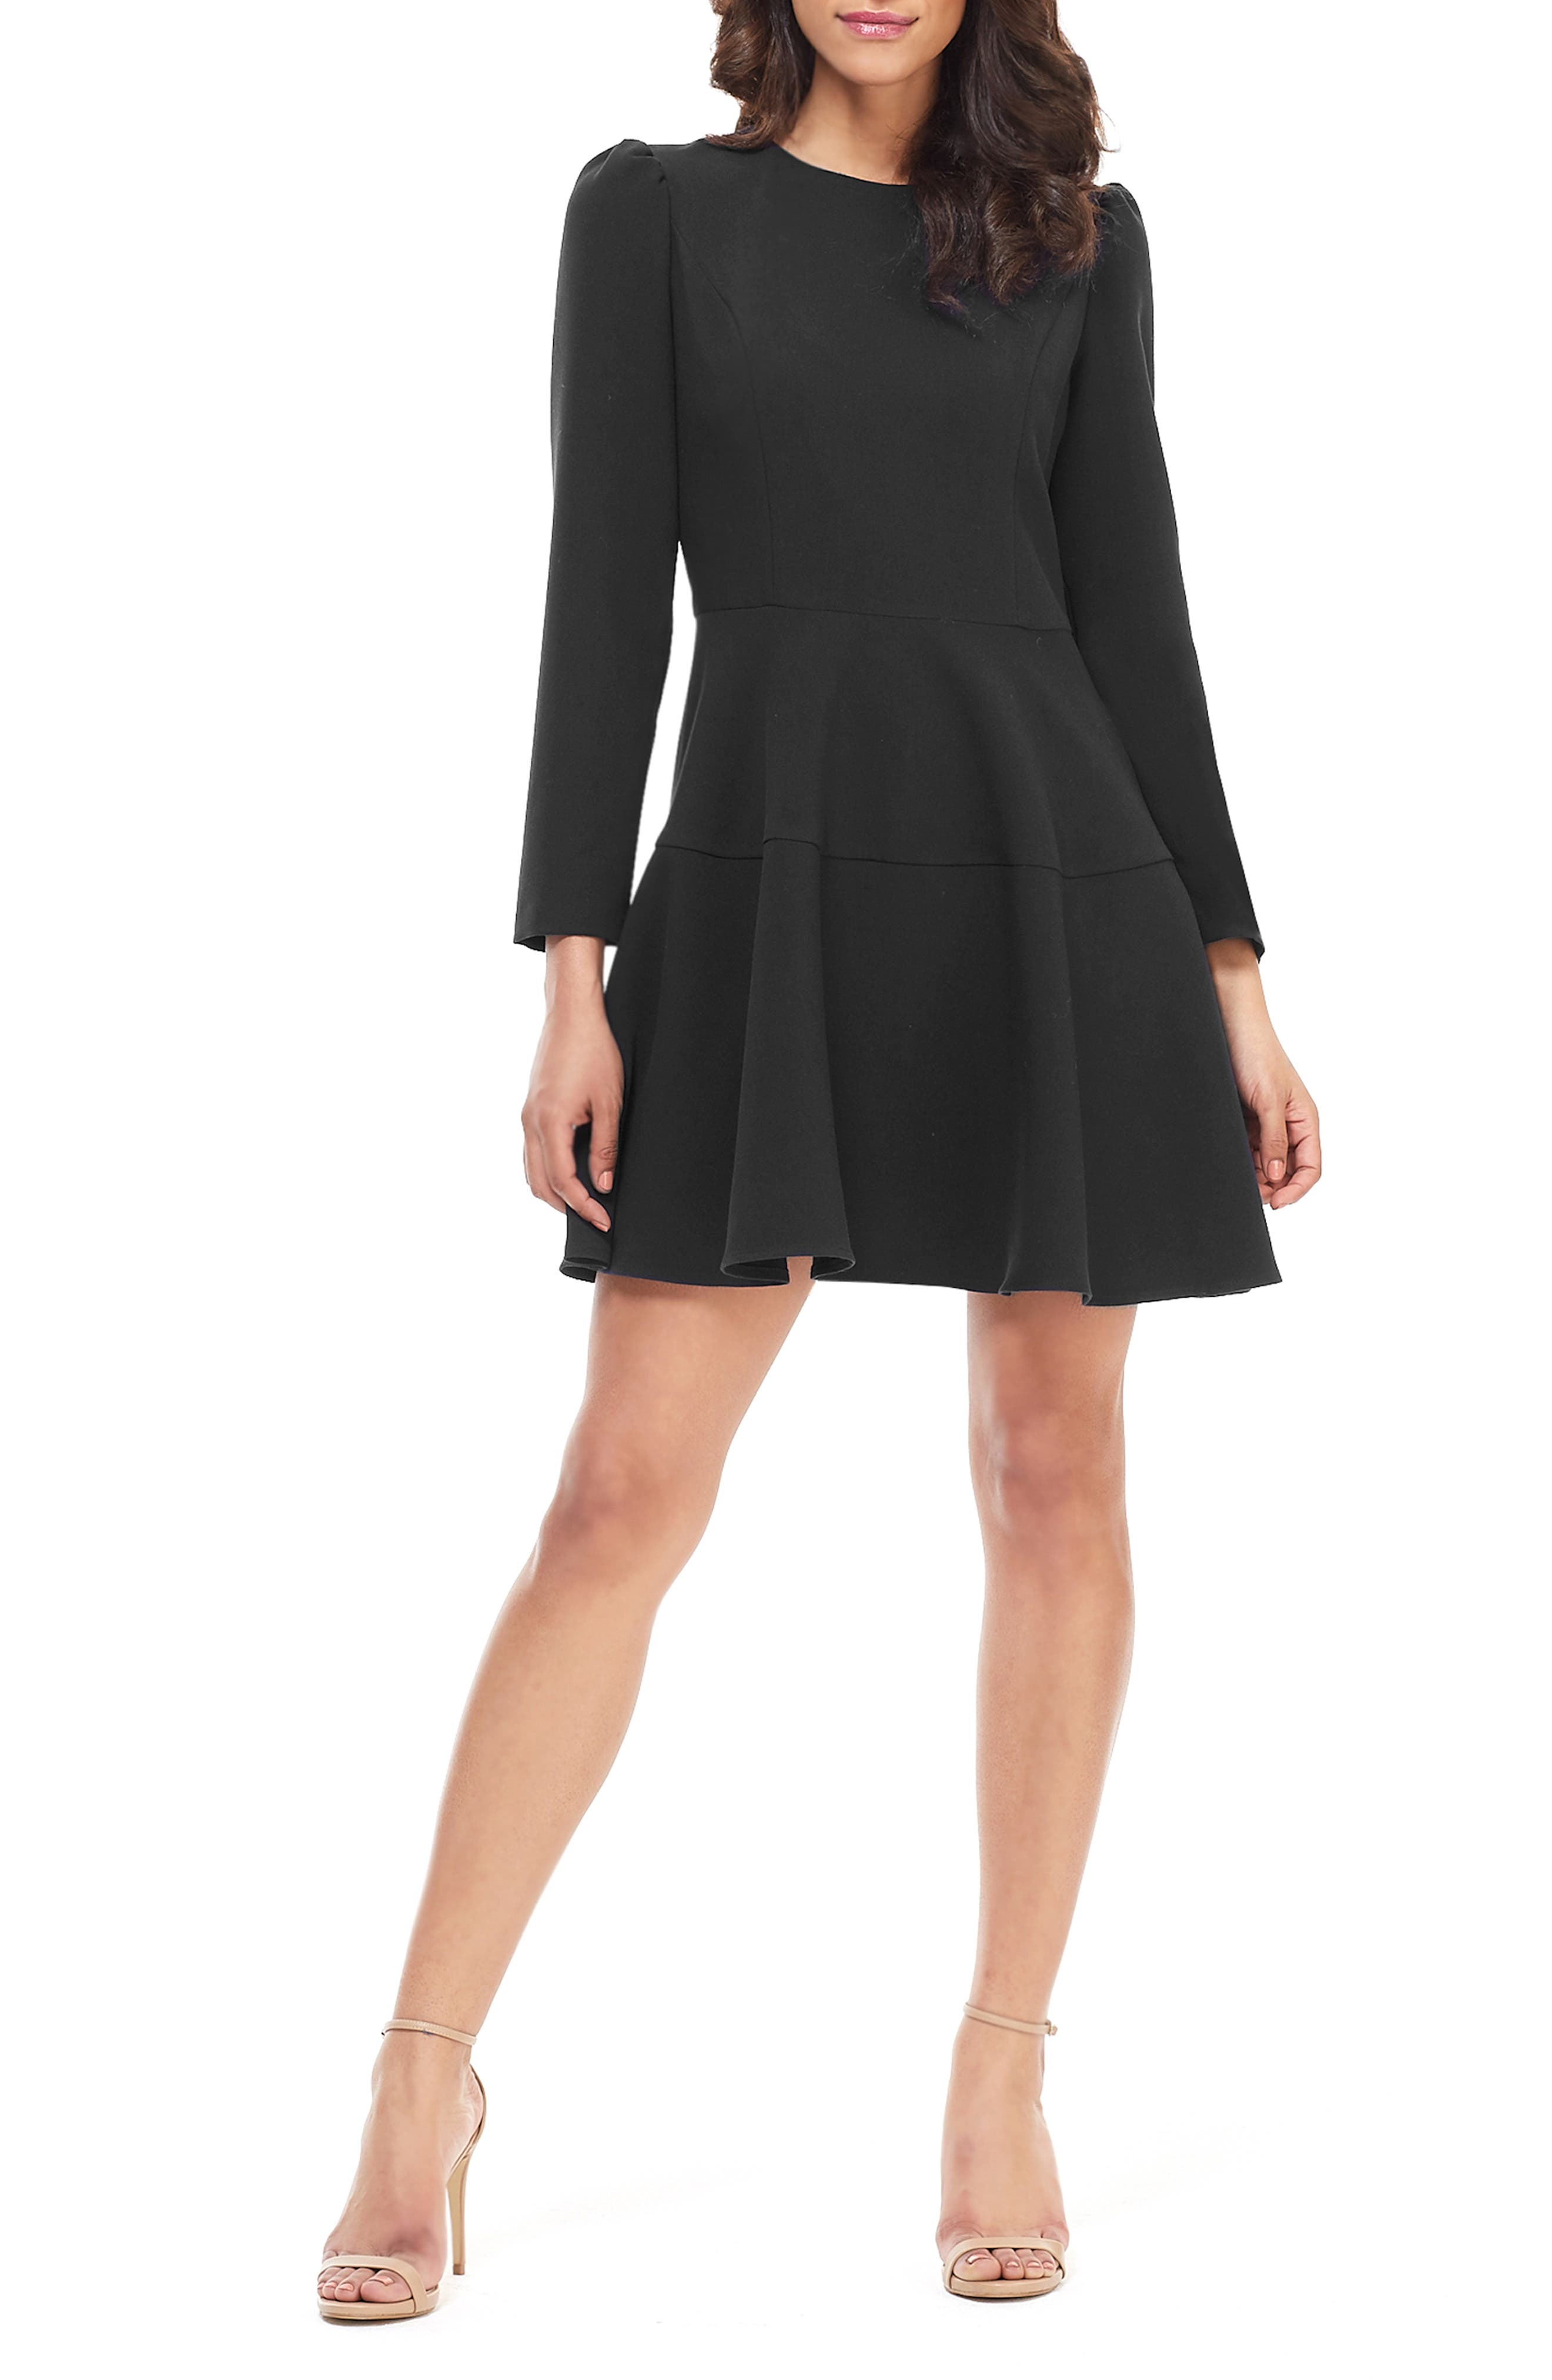 Gal Meets Glam Collection Celeste Fit & Flare Dress, 8 (similar to 1) - Black